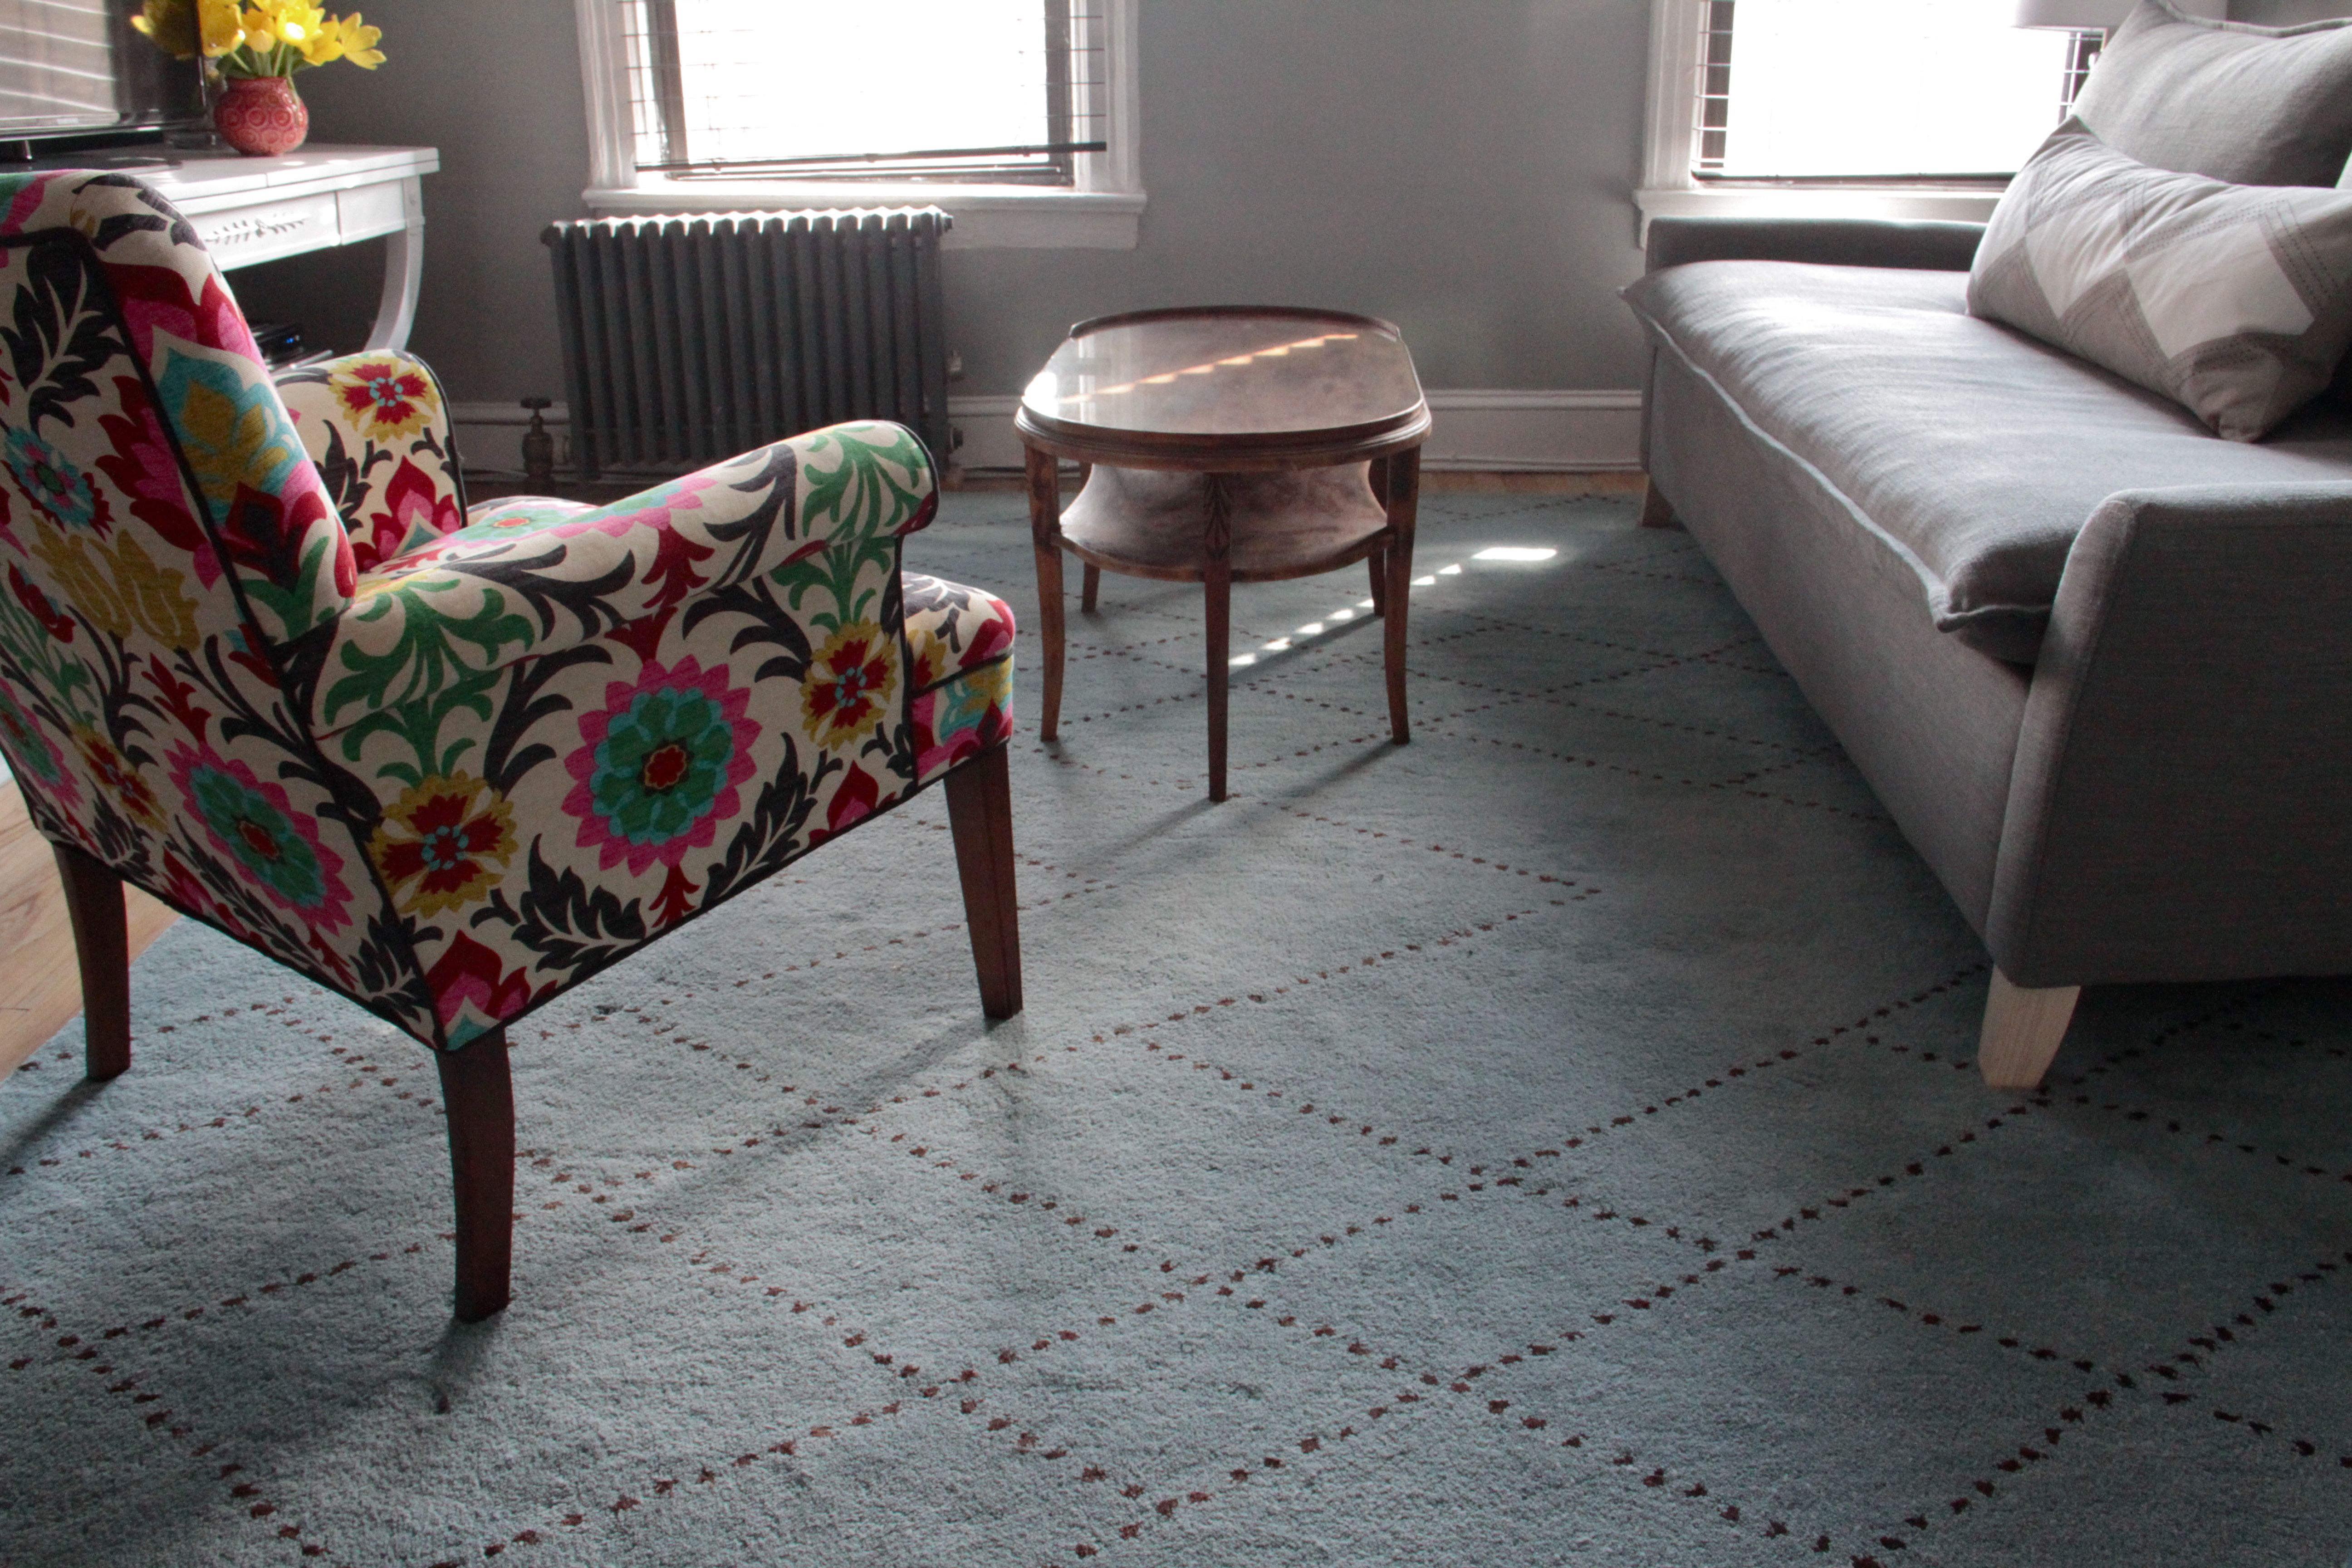 The rug was a risk, but I liked the pattern, and wanted to try something trendy. We thought it was darker when we ordered it, but we worked with it just the same when we got it. Speed was of the essence.